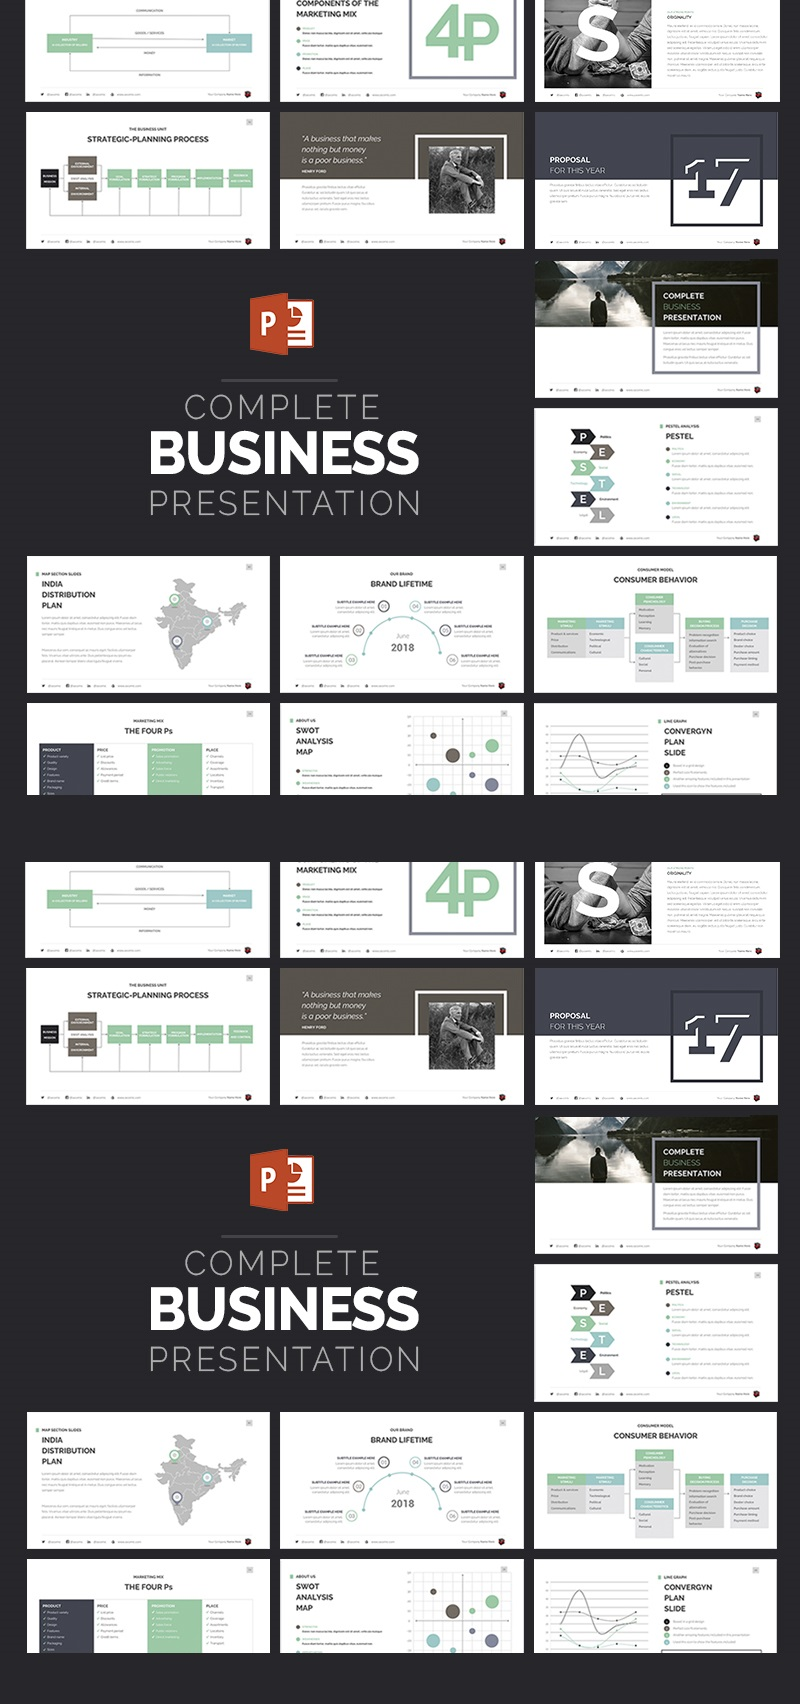 "PowerPoint šablona ""Complete Business Presentation"" #63510"